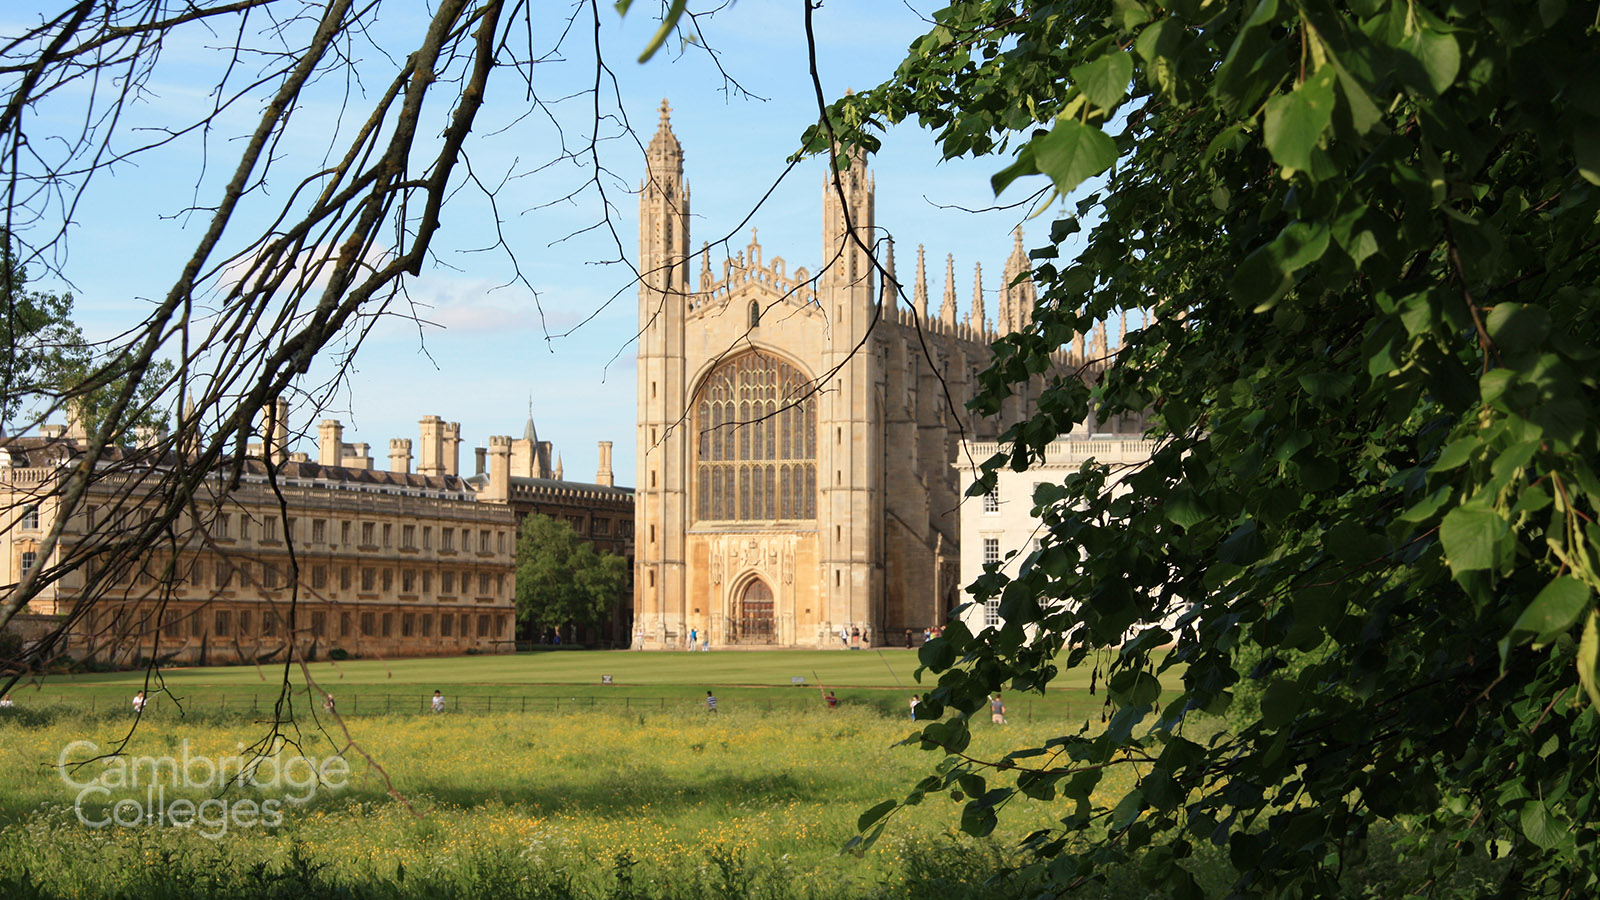 A view of King's college chapel from the Cambridge backs